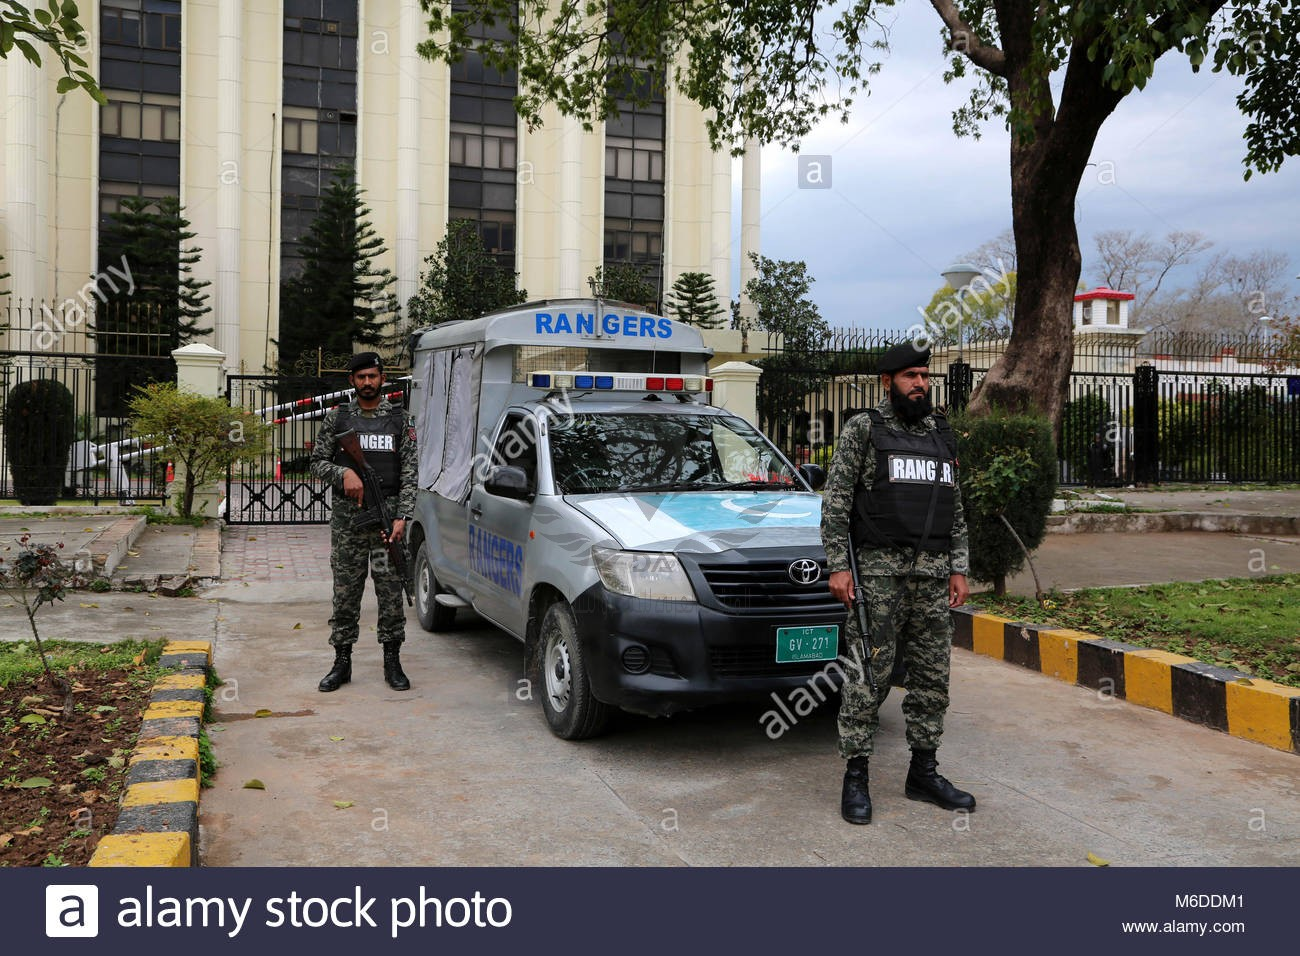 islamabad-3rd-mar-2018-pakistani-rangers-stand-guard-outside-the-parliament-M6DDM1.jpg